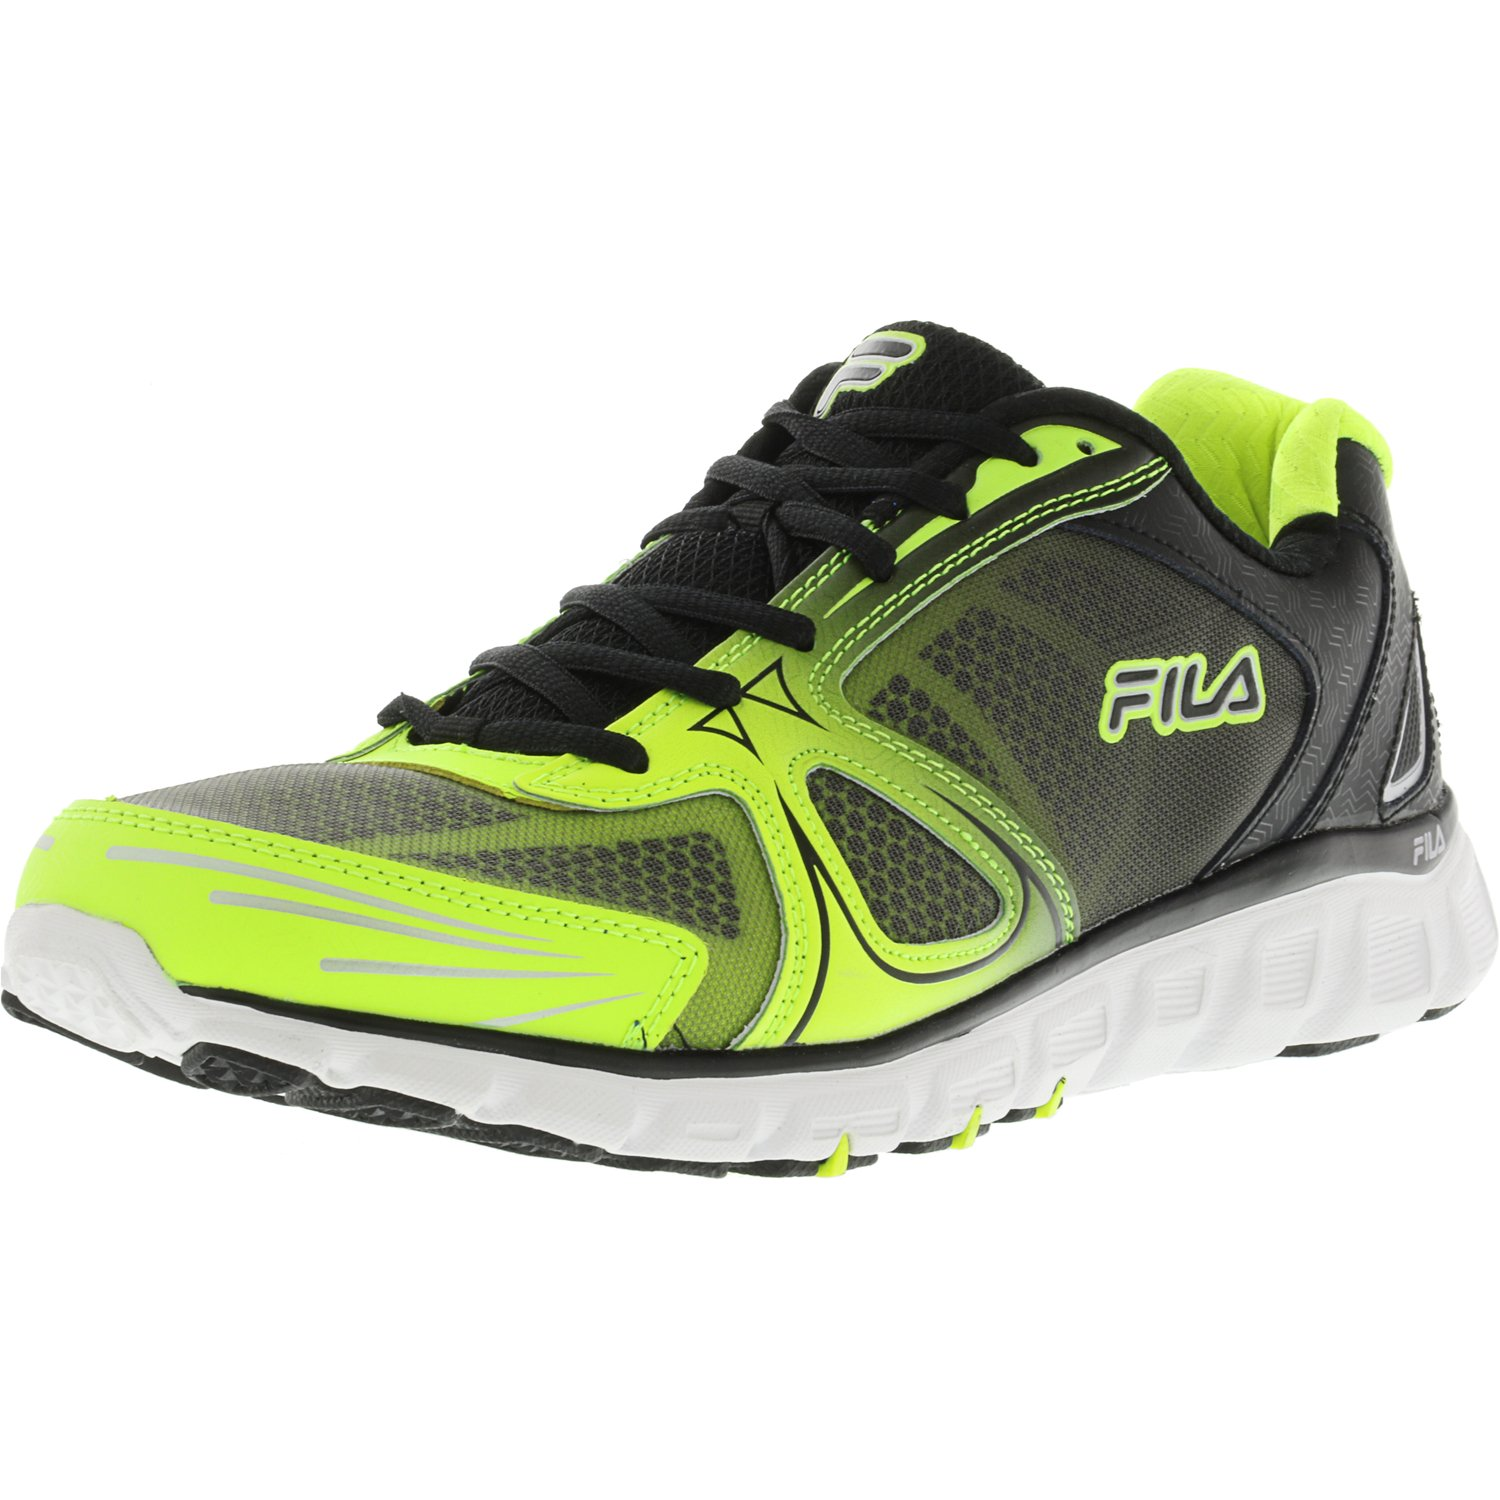 Fila Men's Memory Solidarity Safety Yellow   Black White Ankle-High Running Shoe 11.5M by Fila